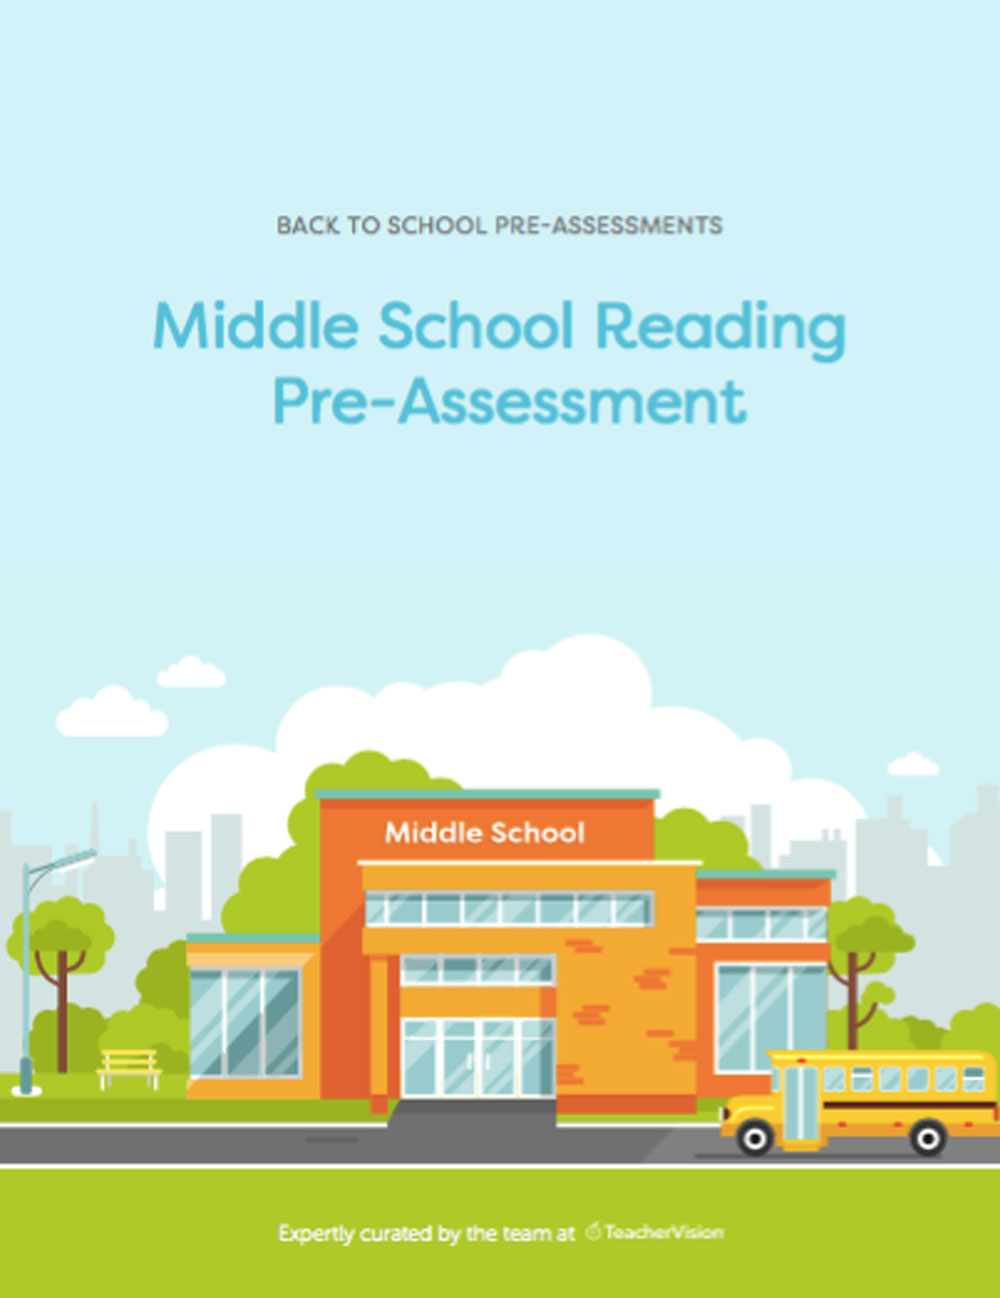 A set of questions for assessing middle school readers